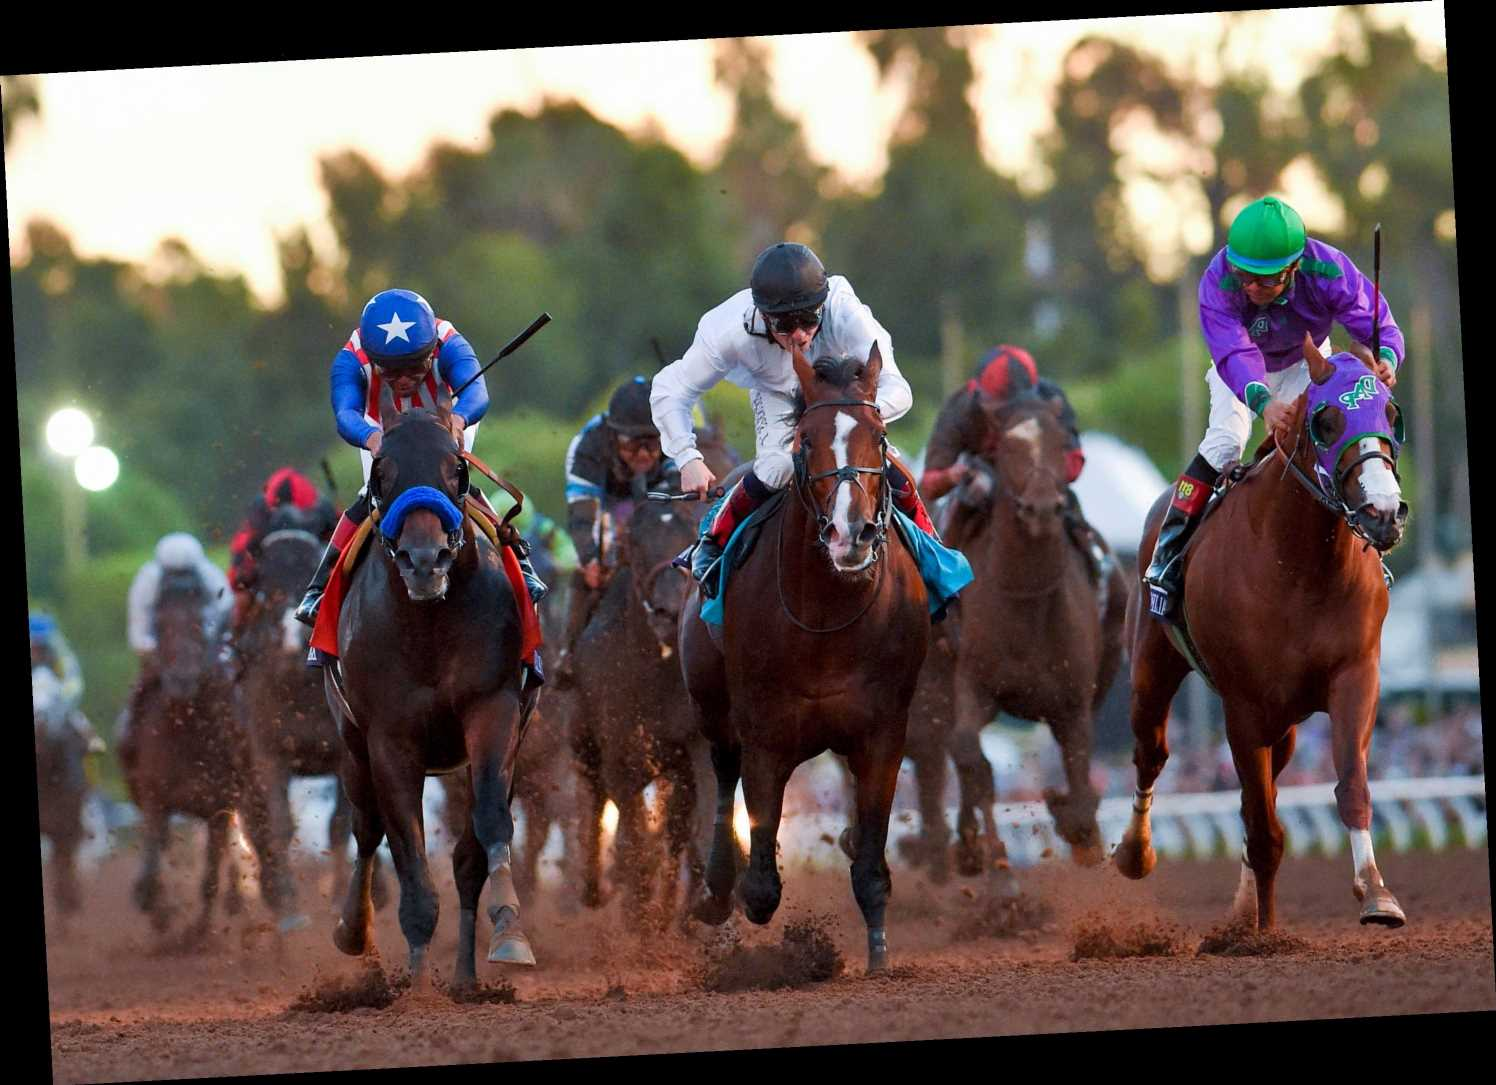 Breeders' Cup tips: Best bets for the racing at Santa Anita on Saturday night